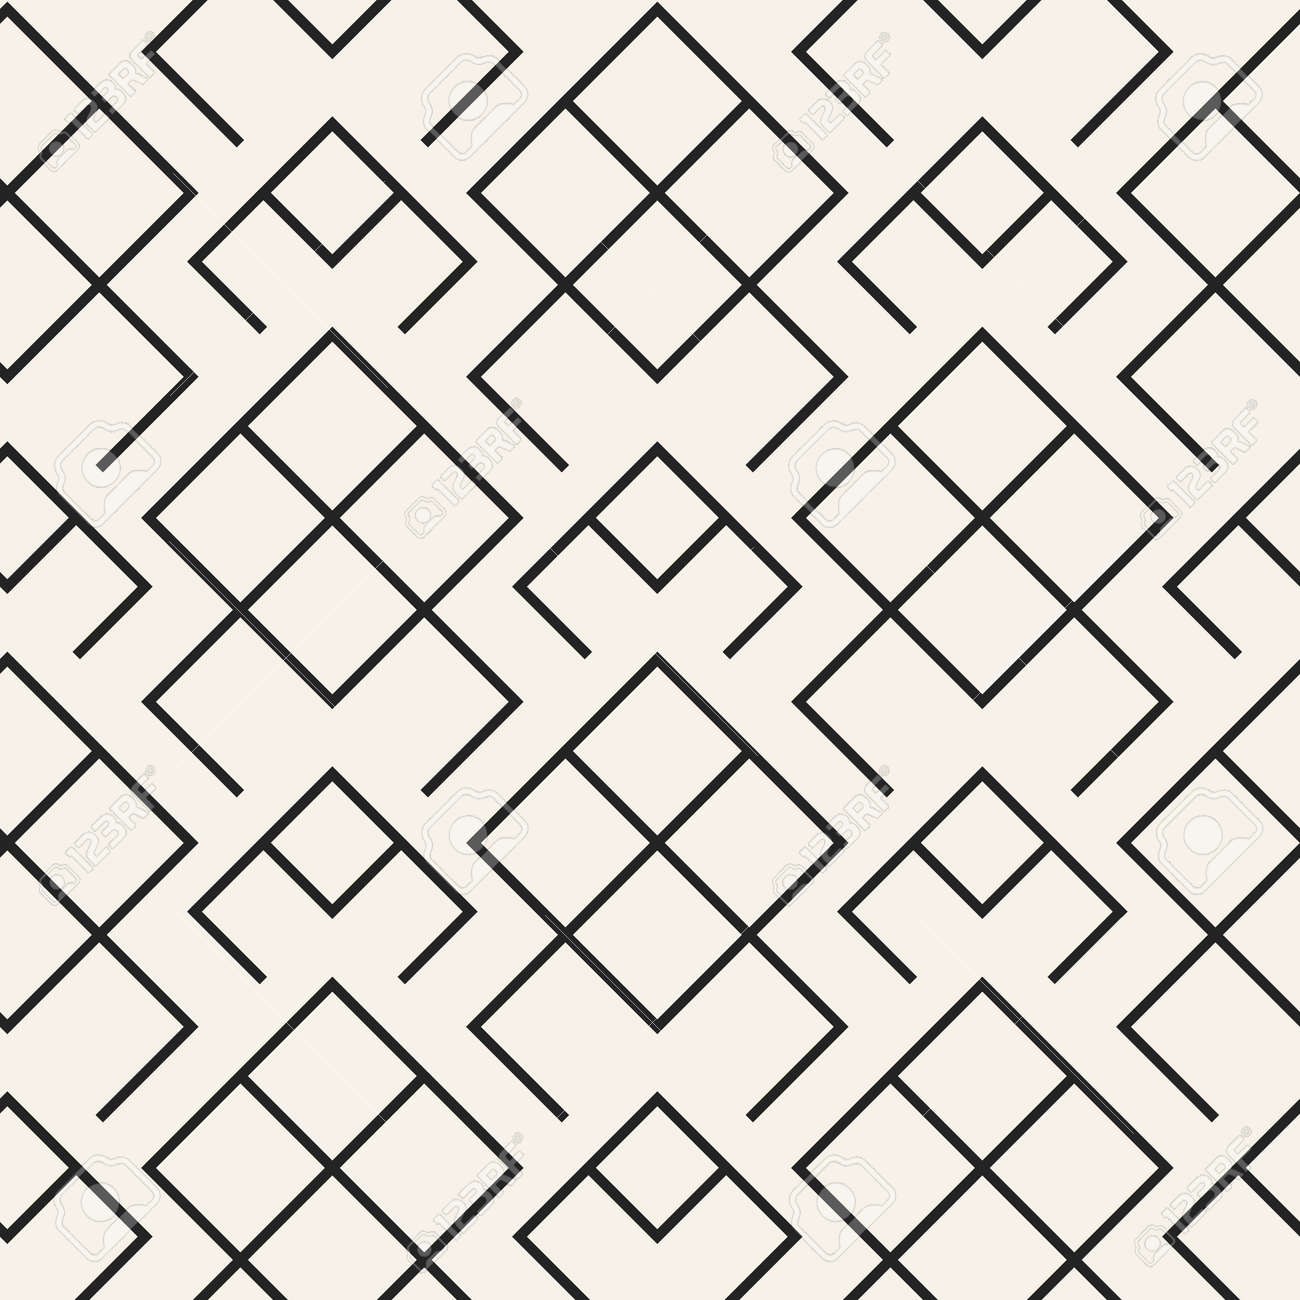 Abstract Concept Monochrome Geometric Pattern Black And White